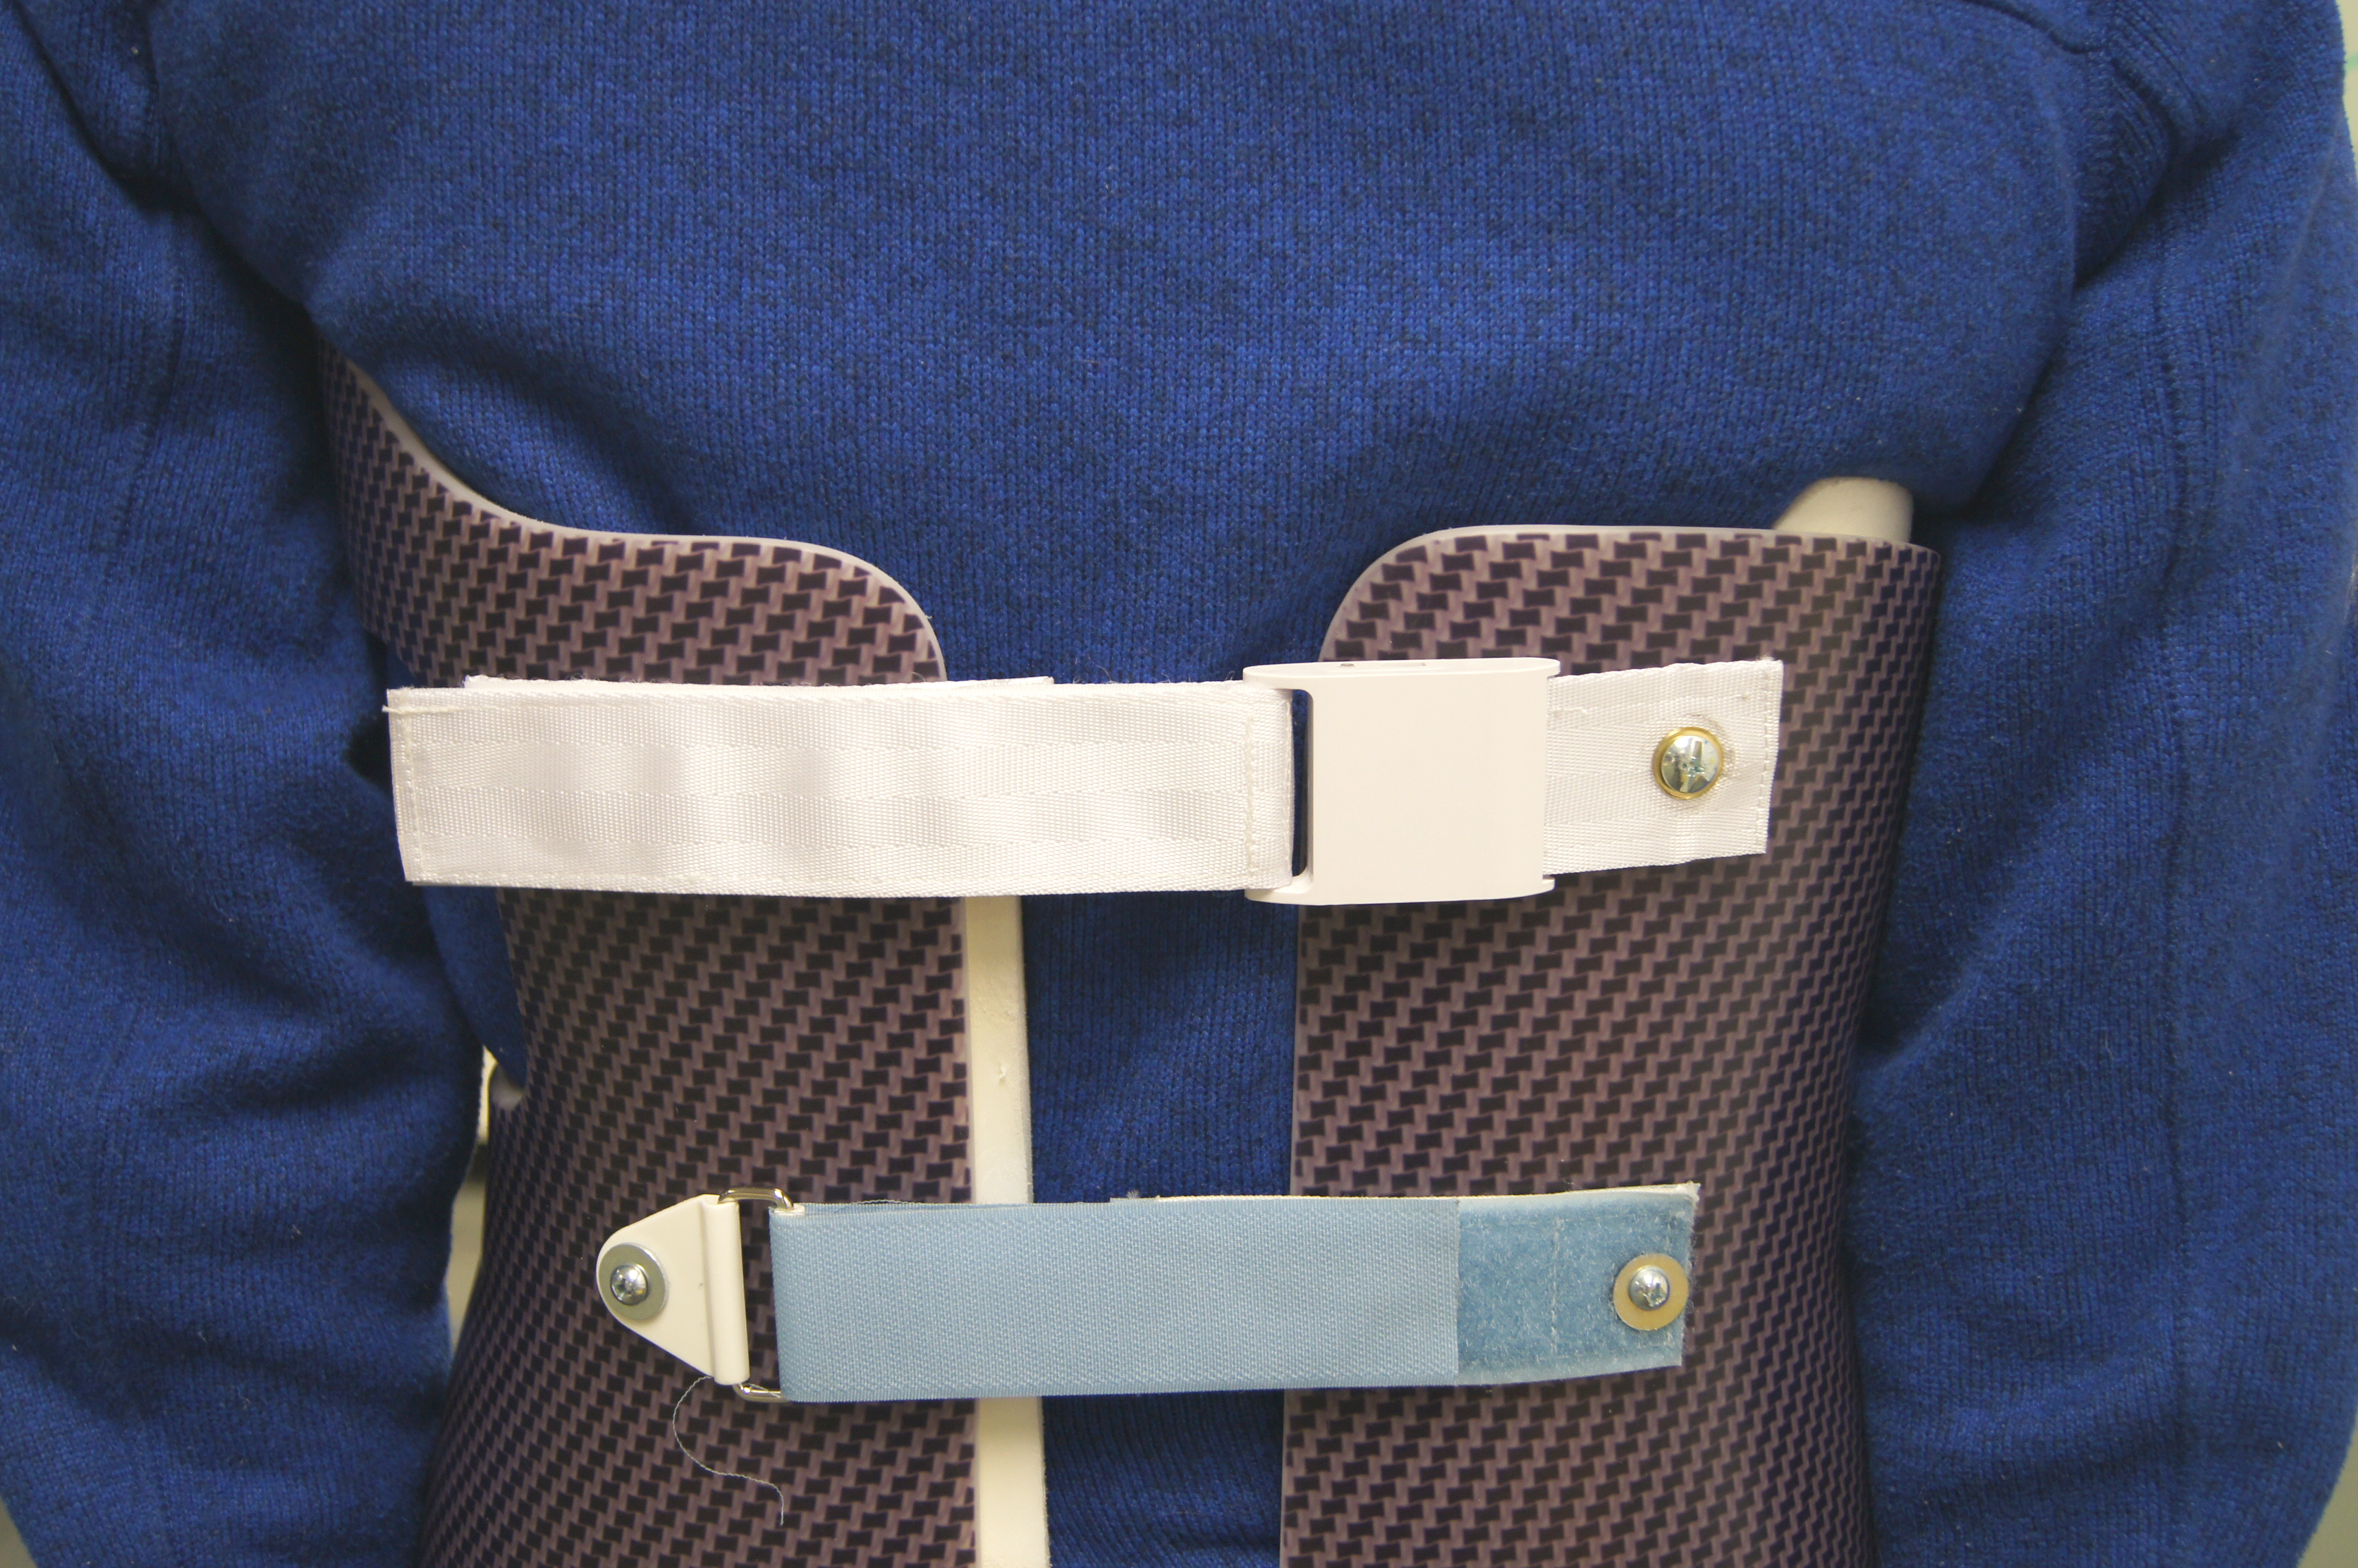 Photo of the Wellinks Smart Strap device